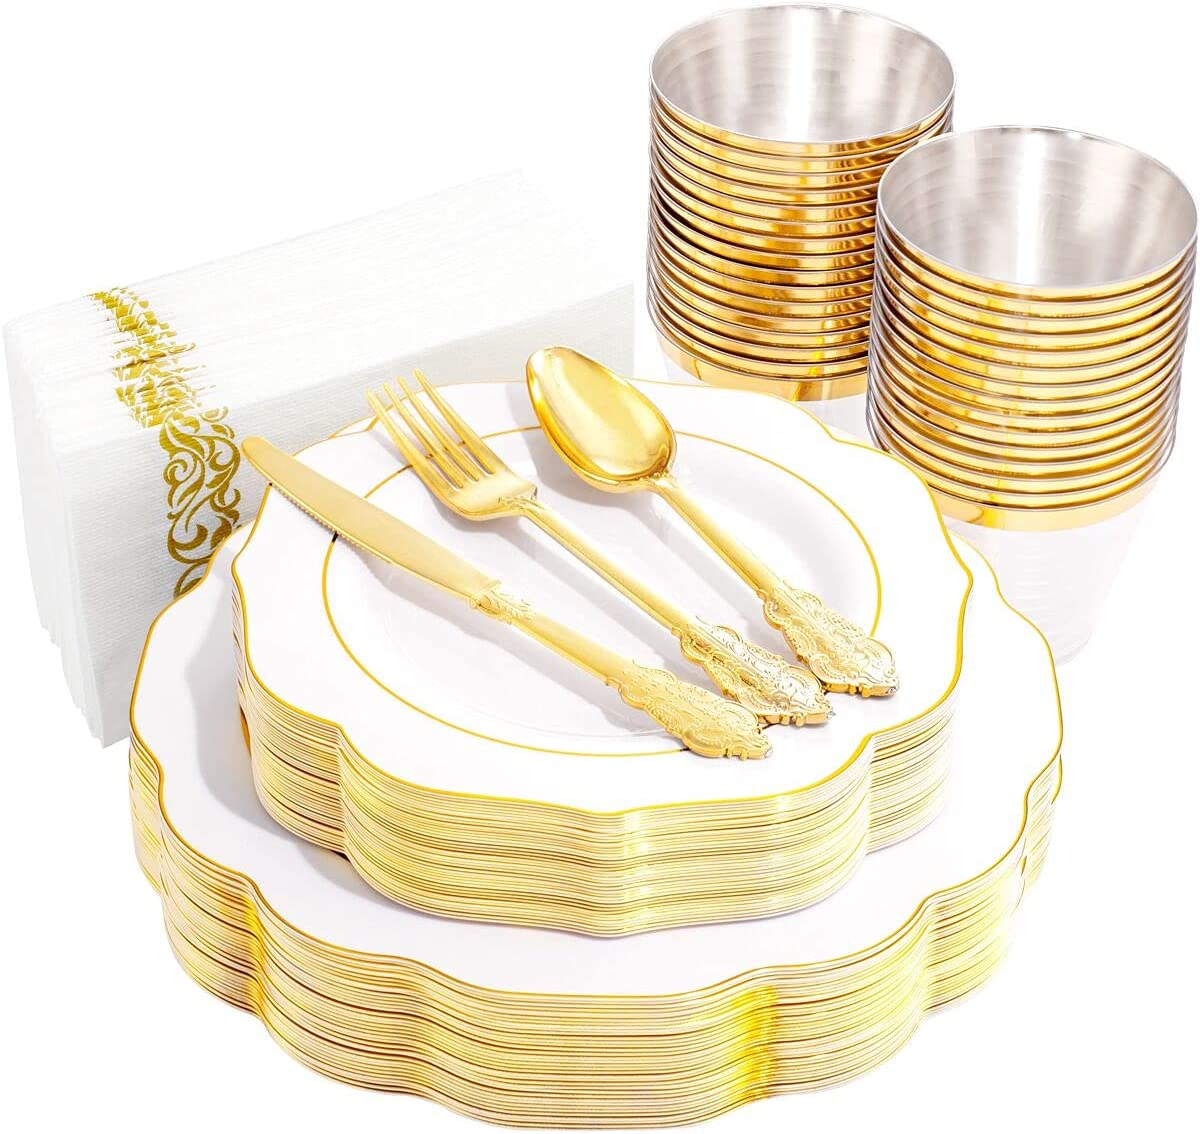 NOCCUR 25Guests White and Gold Disposable Plastic Free Shipping 2021 autumn and winter new Cheap Bargain Gift ut Plates with